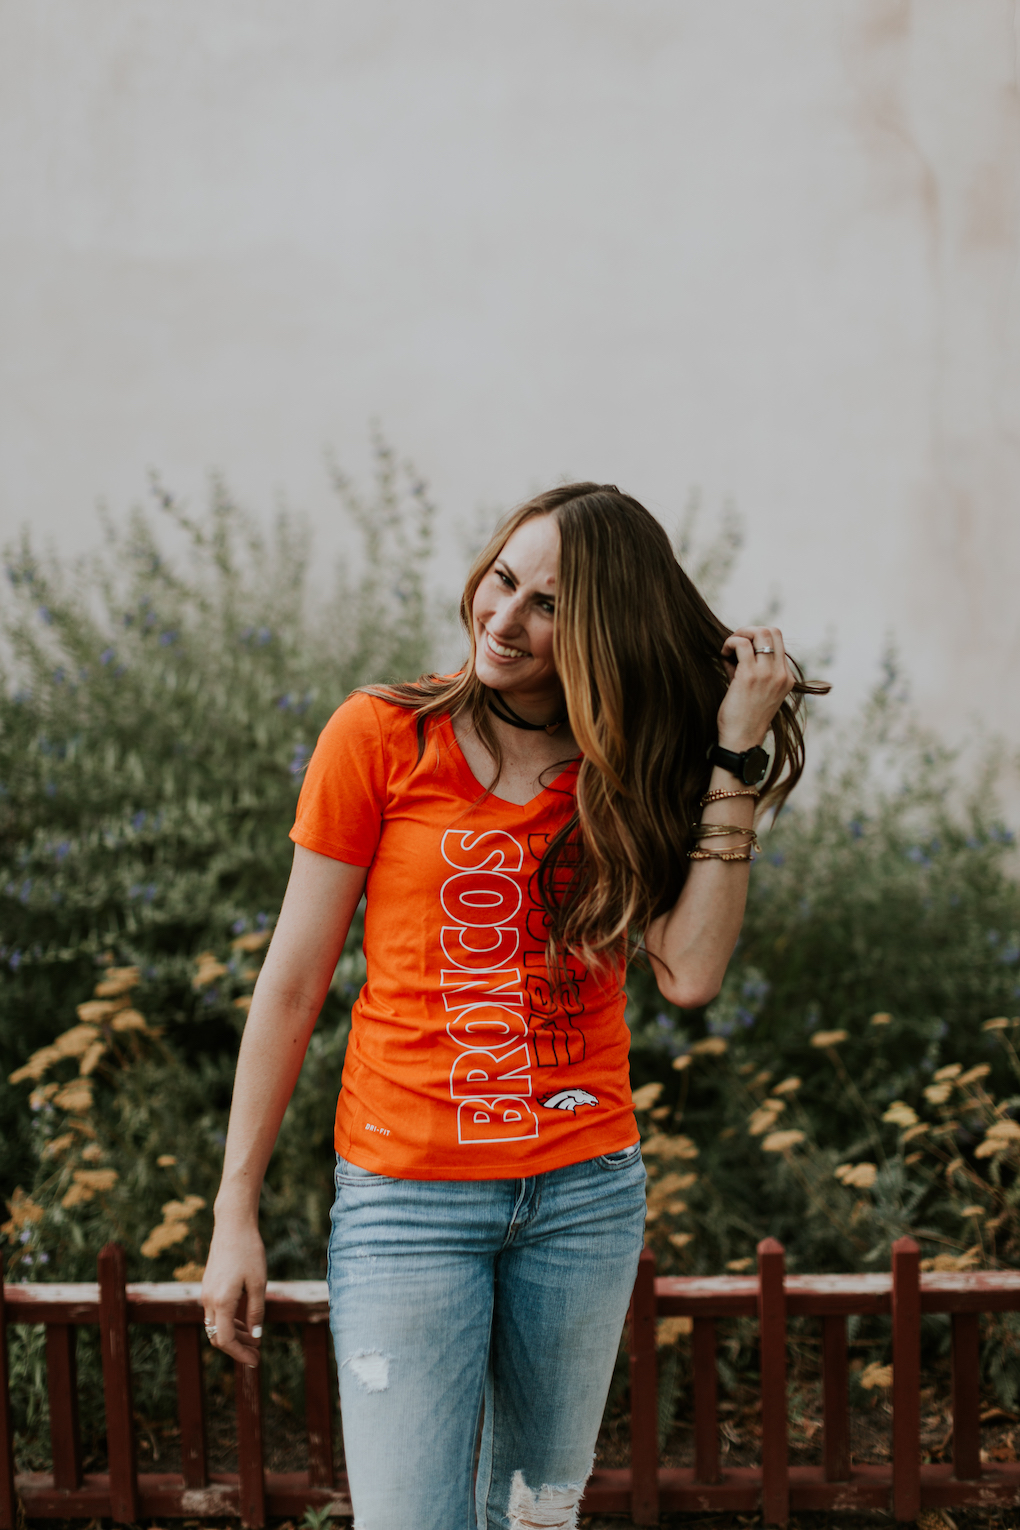 Womens NFL Broncos T-Shirt girl wearing bright orange Broncos Tee shirt with brown curled hair and skinny distressed denim